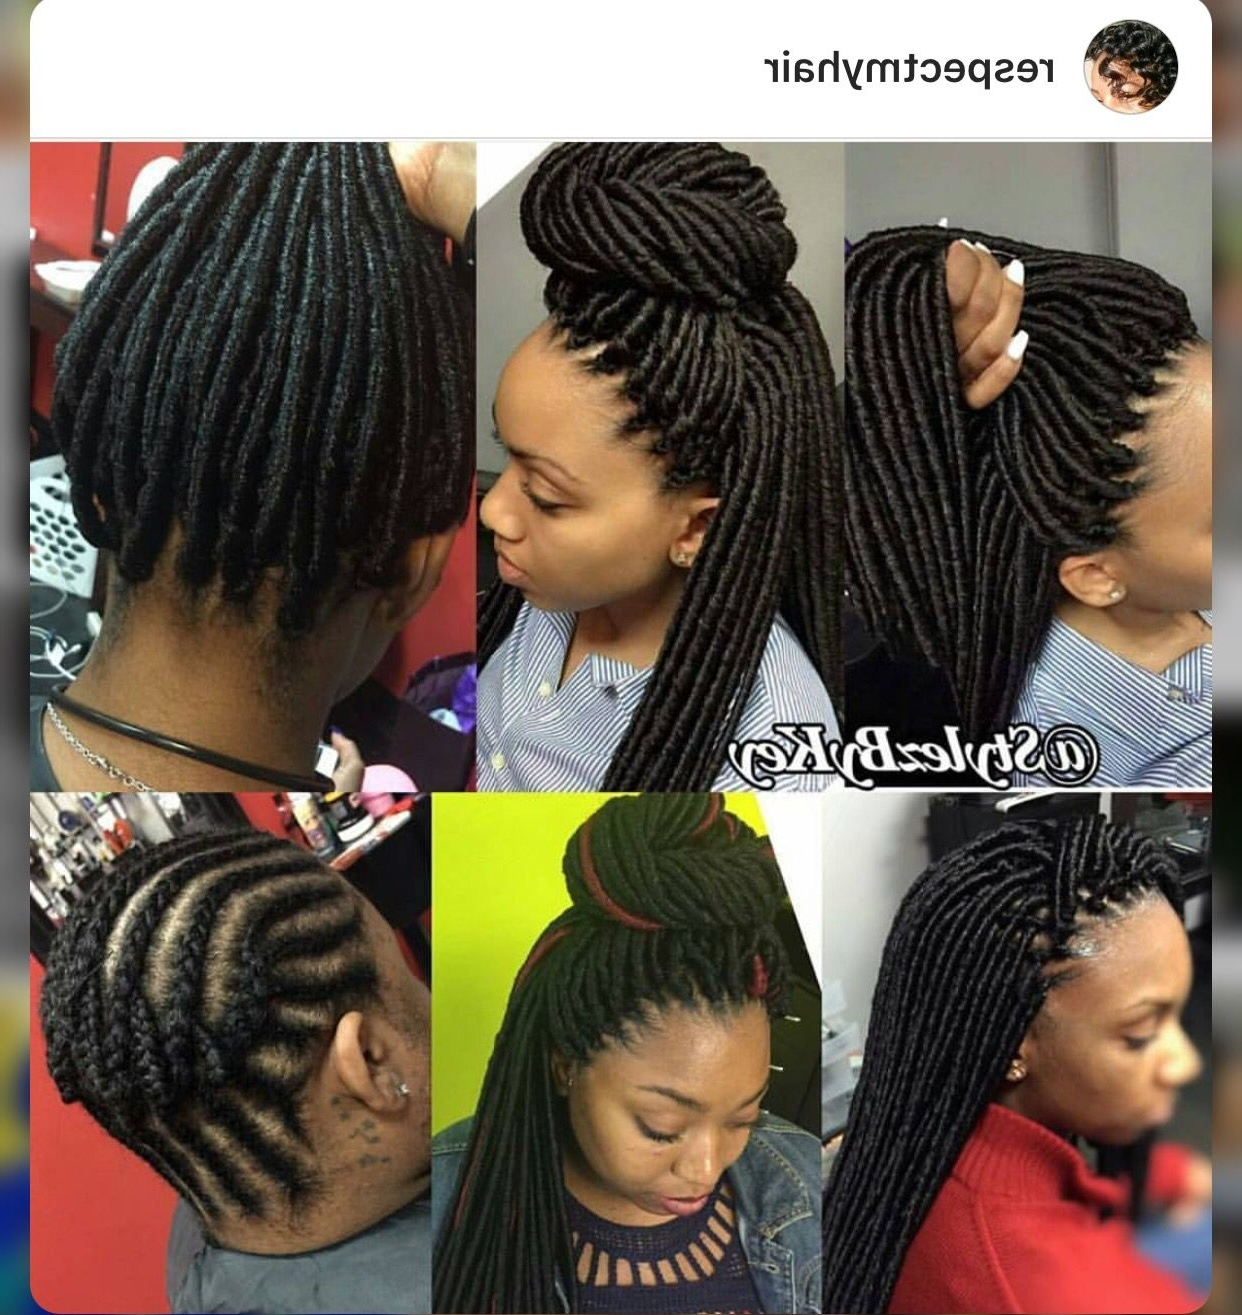 Crochet Dreads | Braid Styles | Pinterest | Dreads, Crochet And With Crochet Braid Pattern For Updo Hairstyles (View 6 of 15)